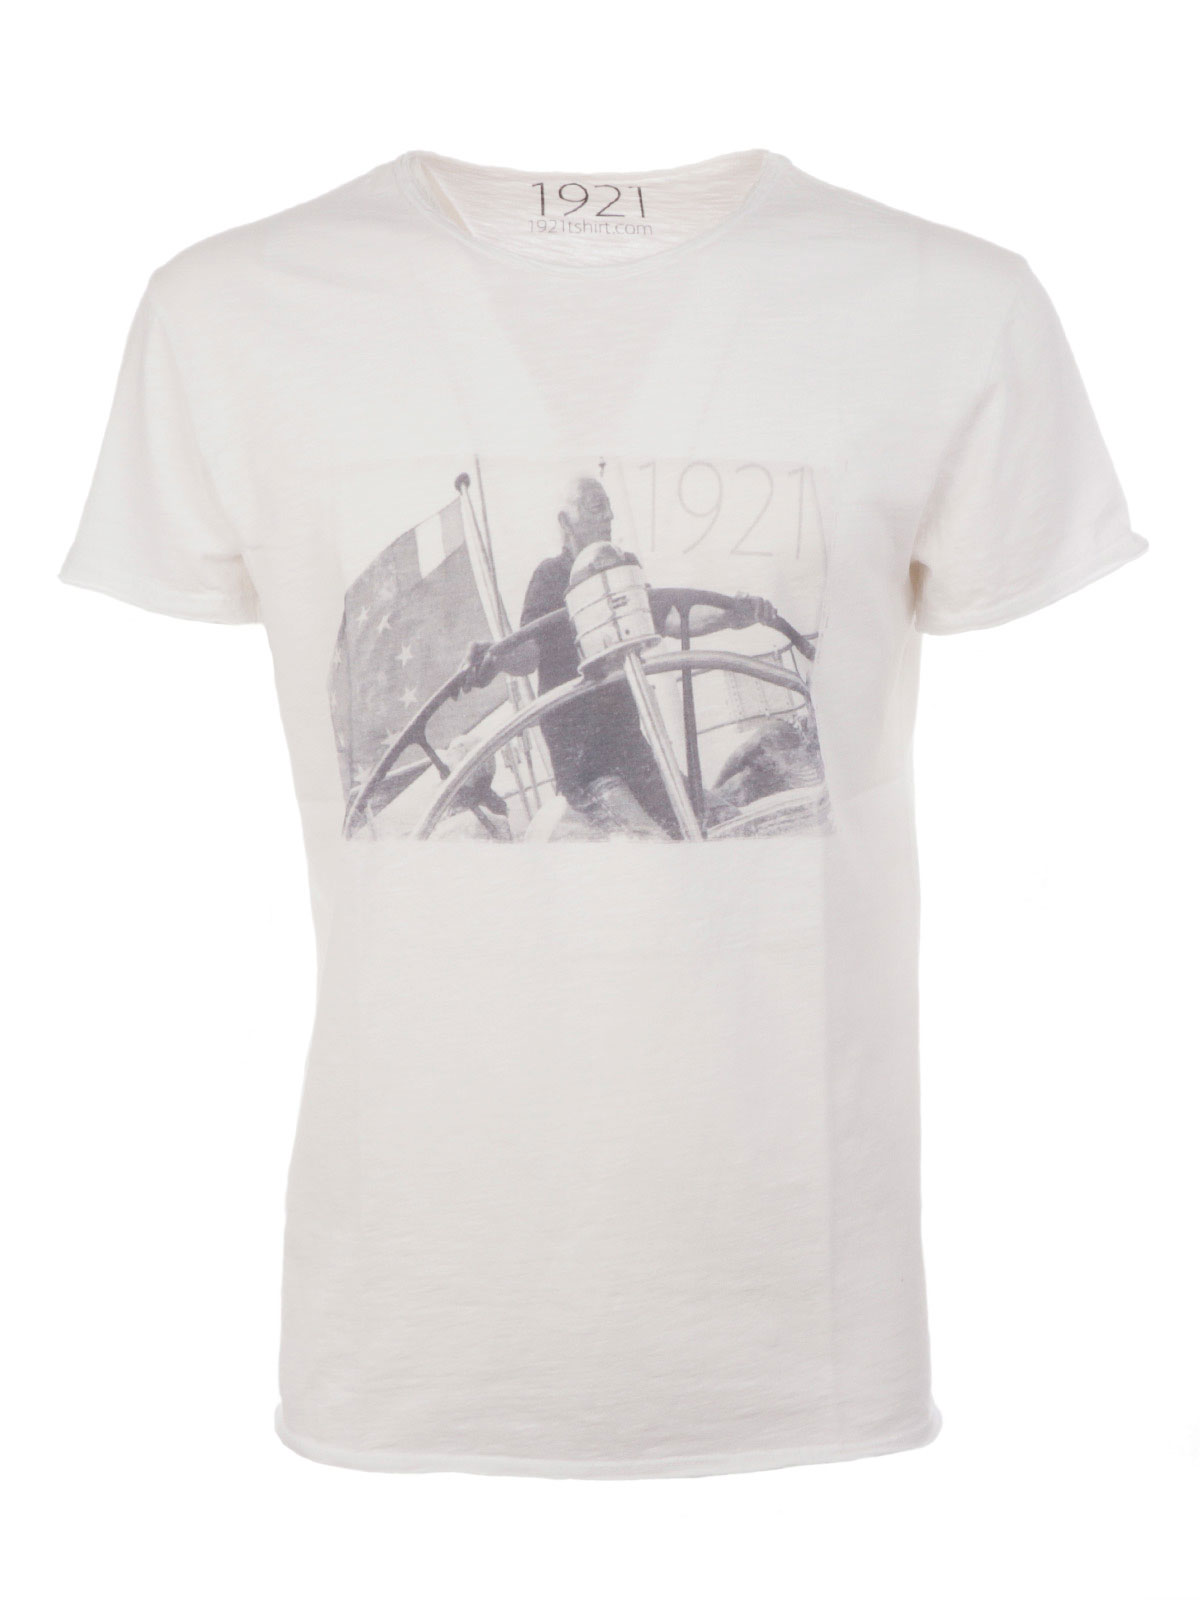 Picture of 1921 | Men's Gianni Agnelli T-Shirt